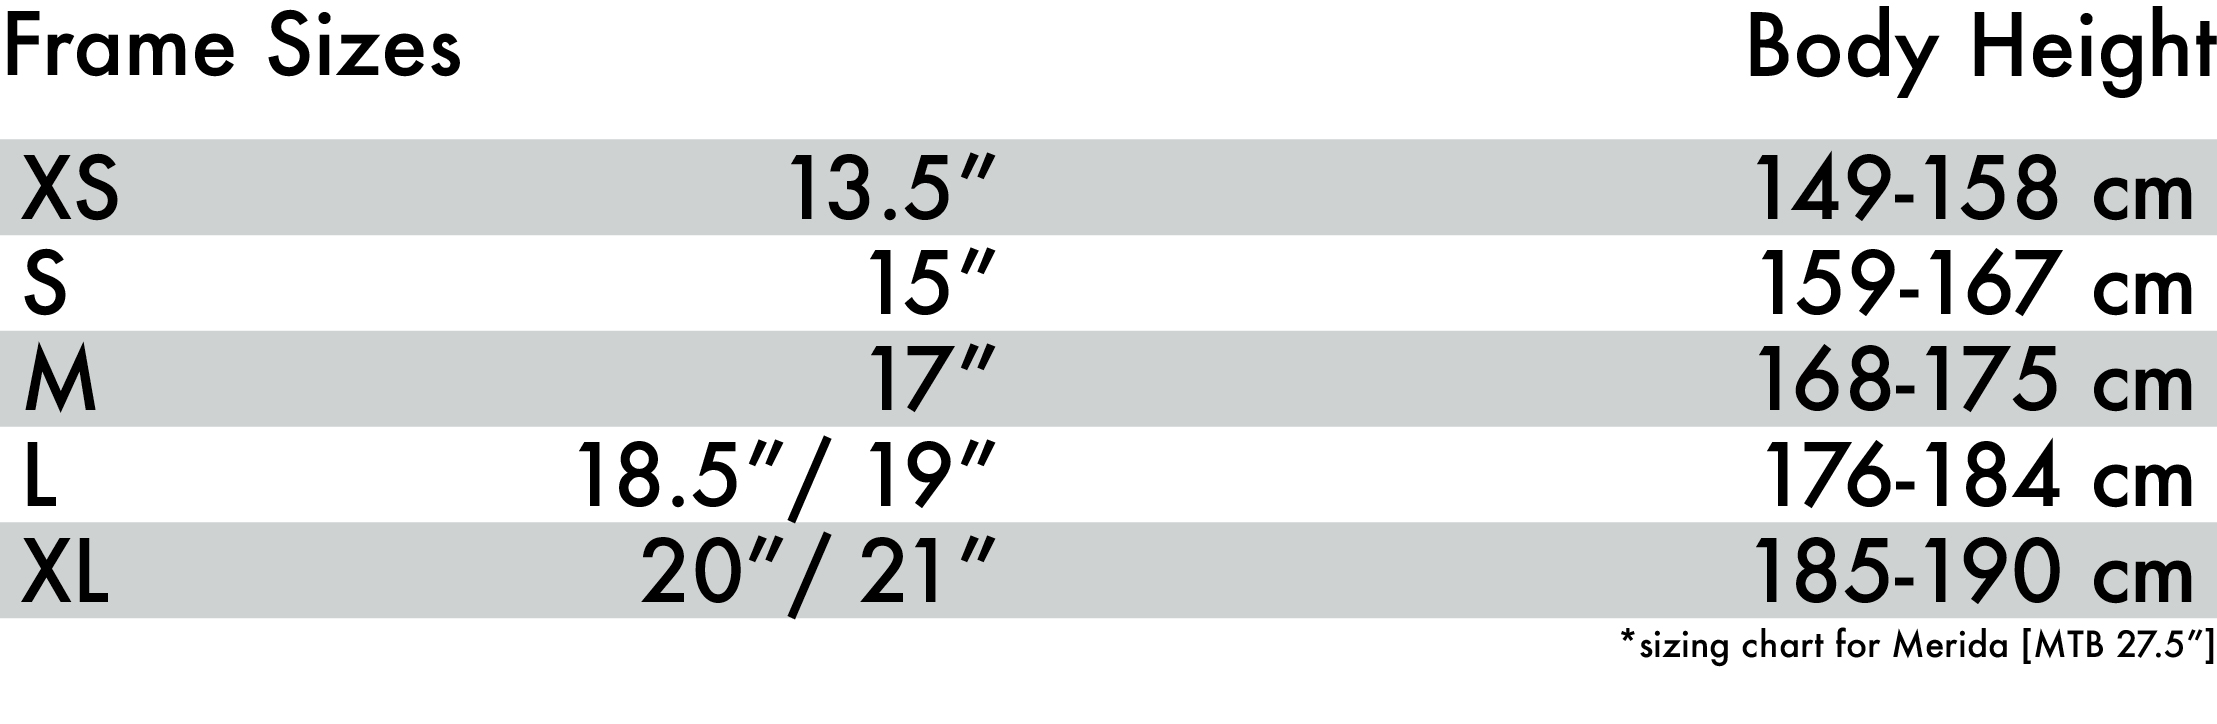 HL Bike Sizing Chart_Merida MTB 27.5.jpg